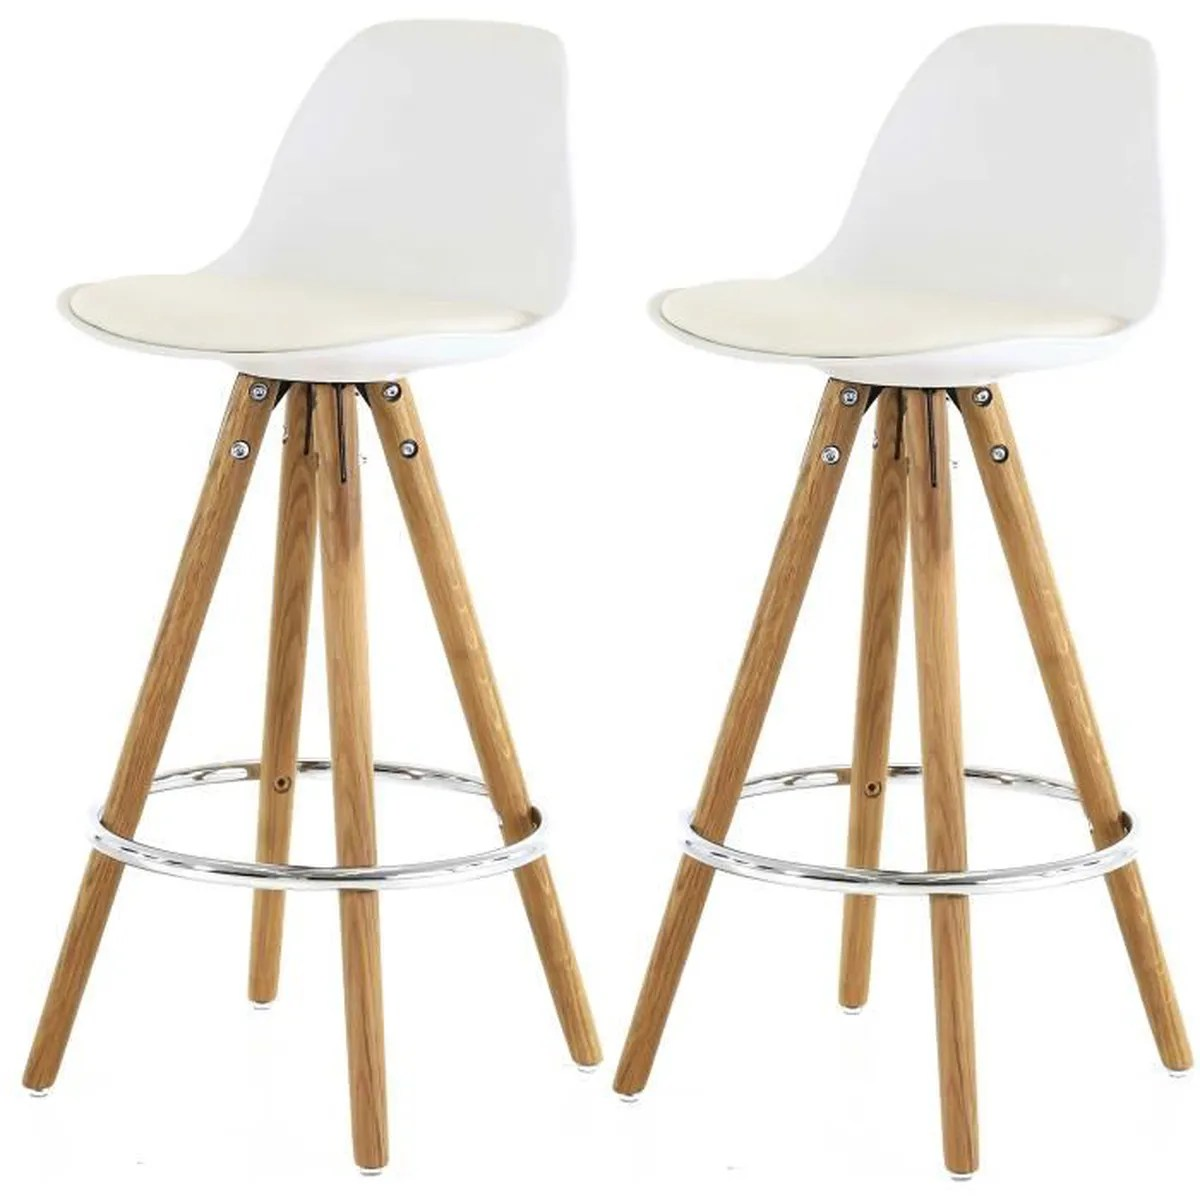 Tabouret Bar Cocktail Scandinave Lot De 2 Tabourets De Bar Scandinave Blanc Uma Achat